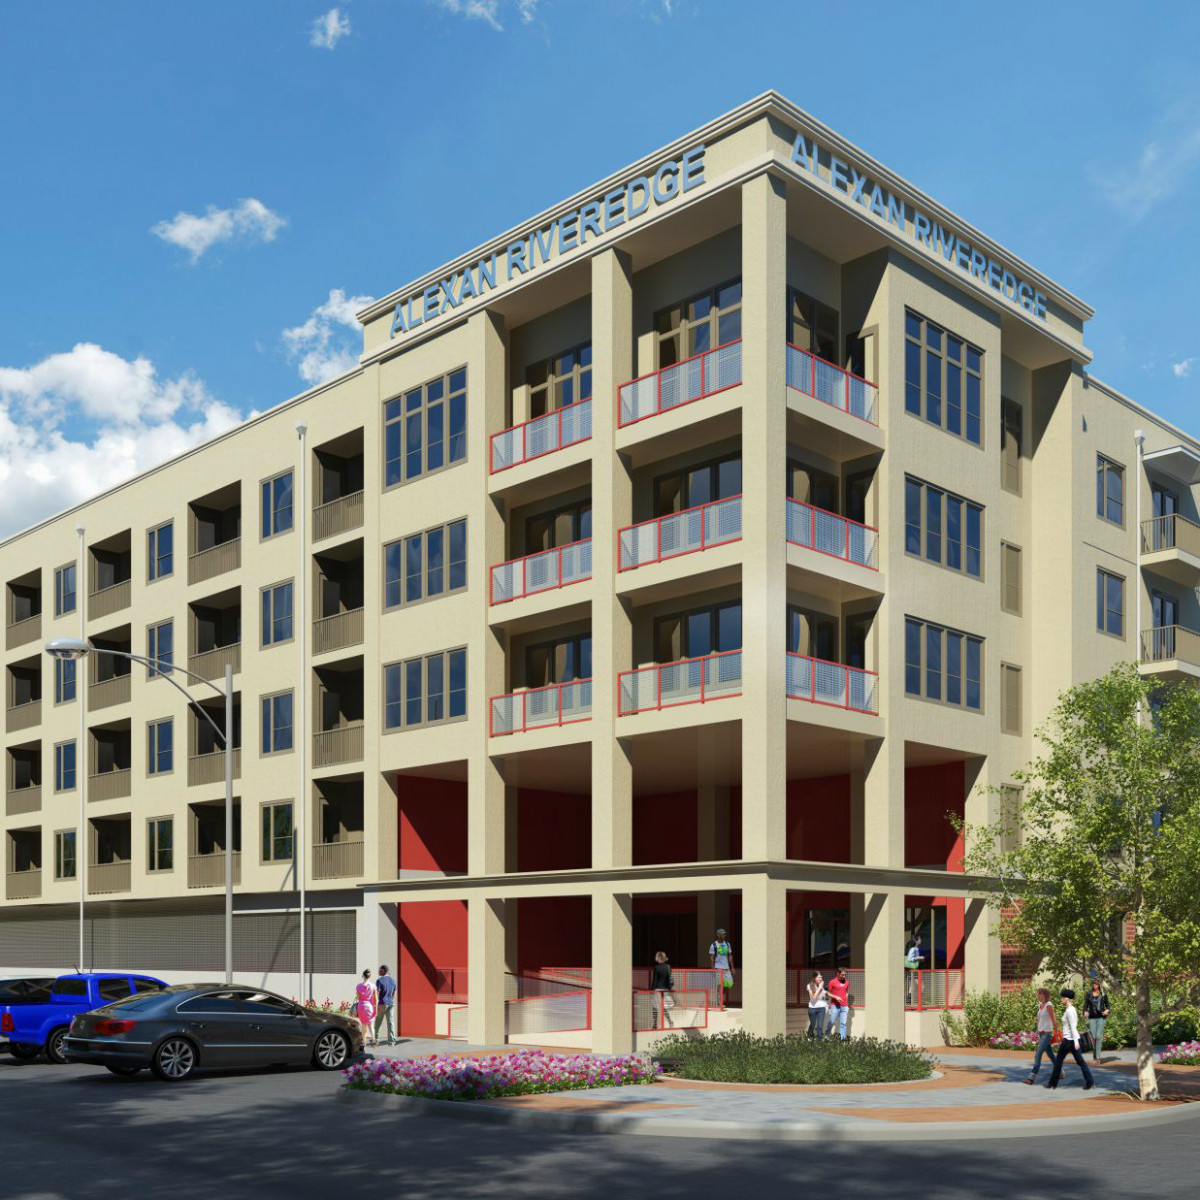 Alexan Riveredge Design District apartments